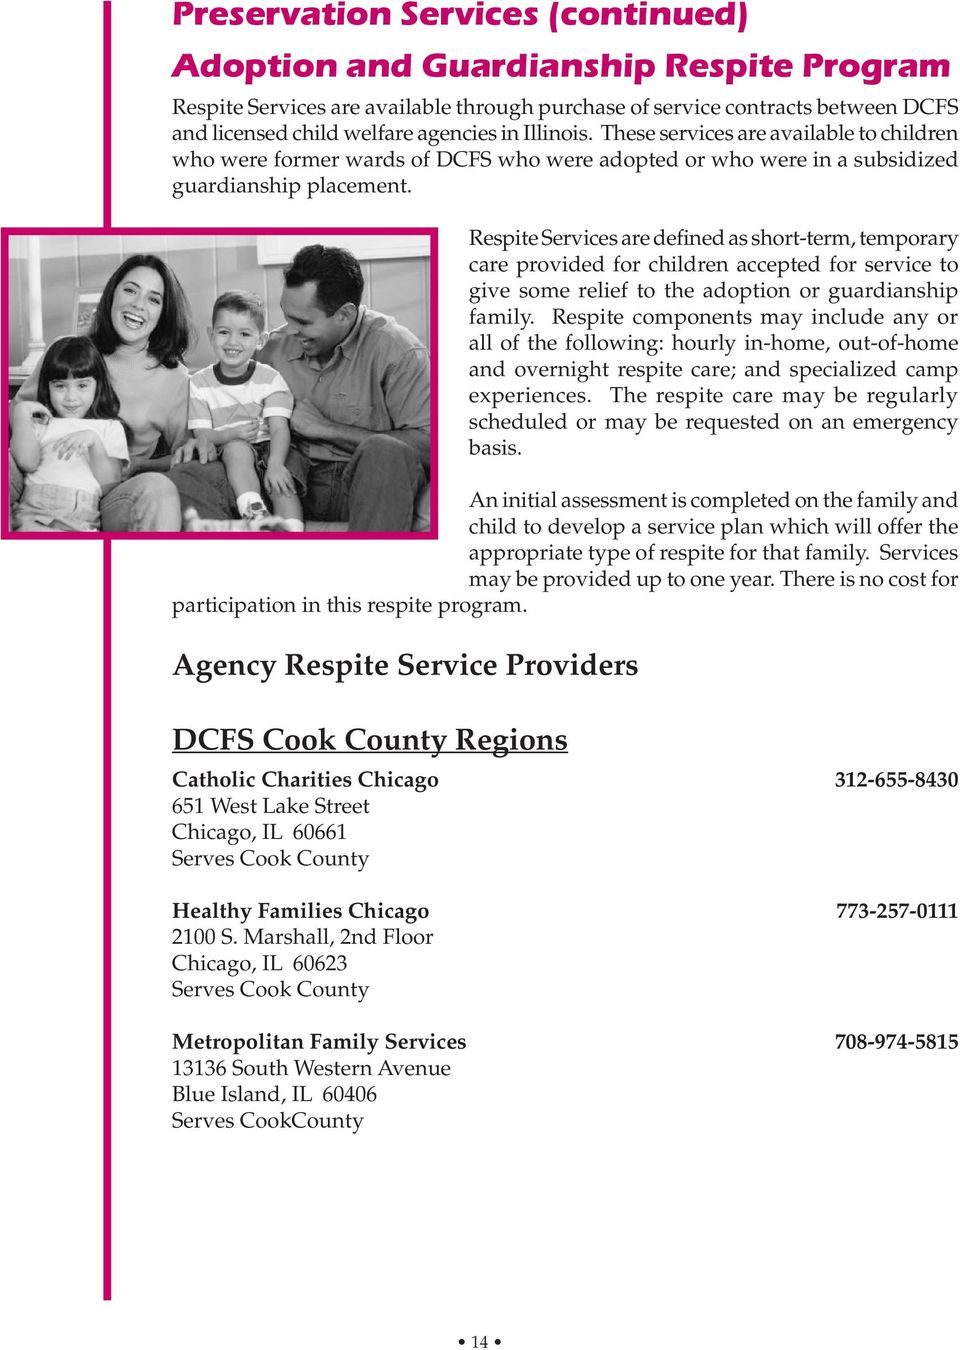 Respite Services are defined as short-term, temporary care provided for children accepted for service to give some relief to the adoption or guardianship family.